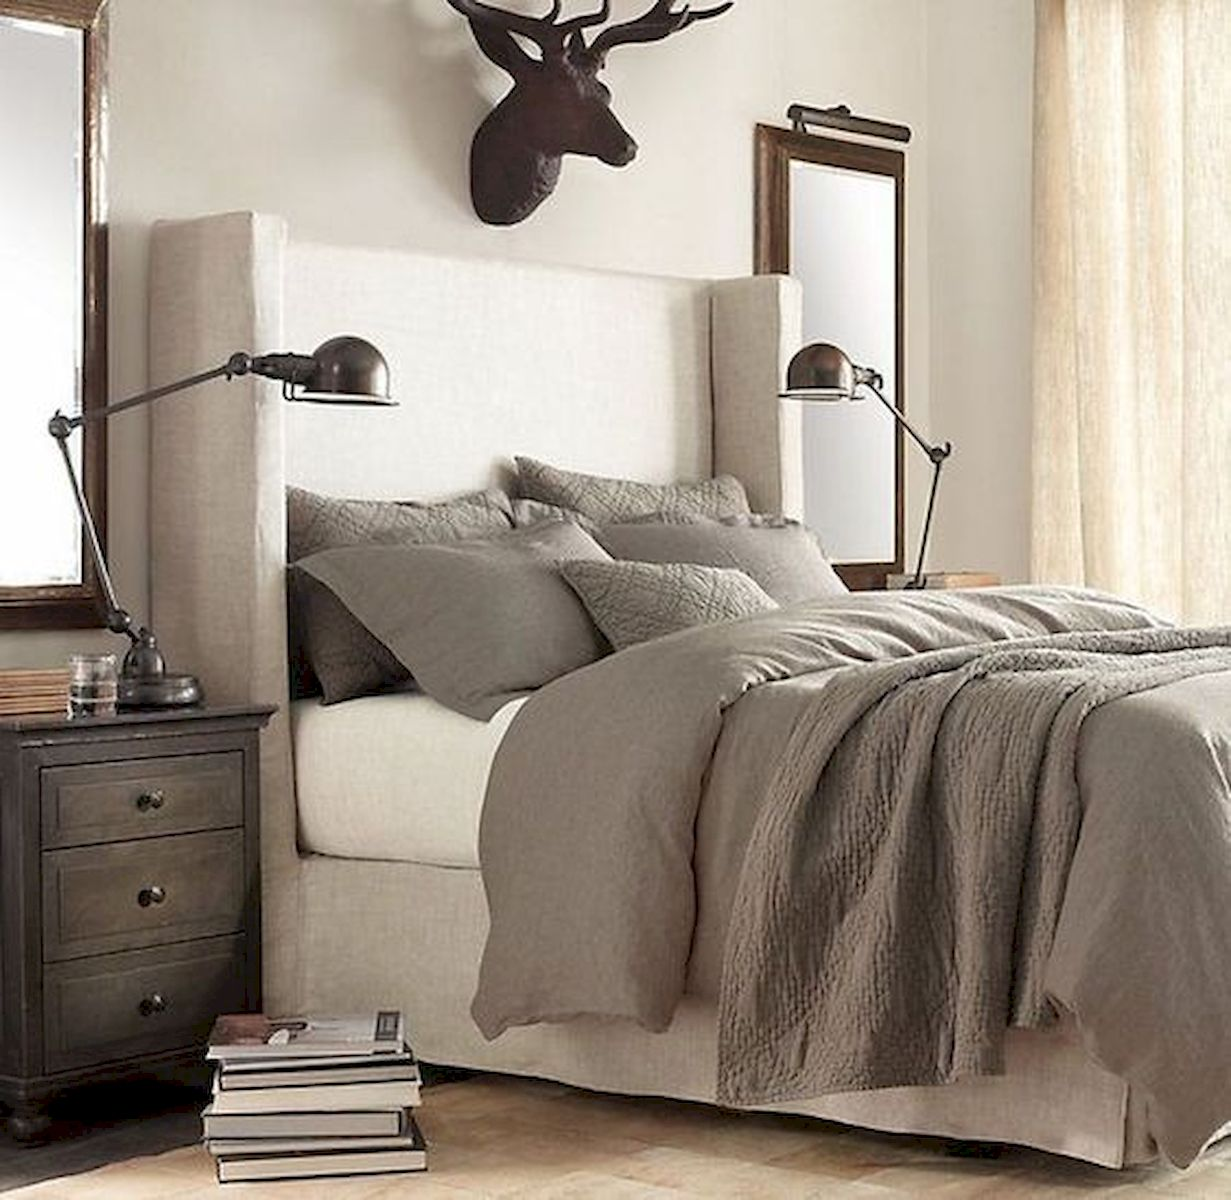 44 Awesome White Master Bedroom Design and Decor Ideas For Any Home Design (44)